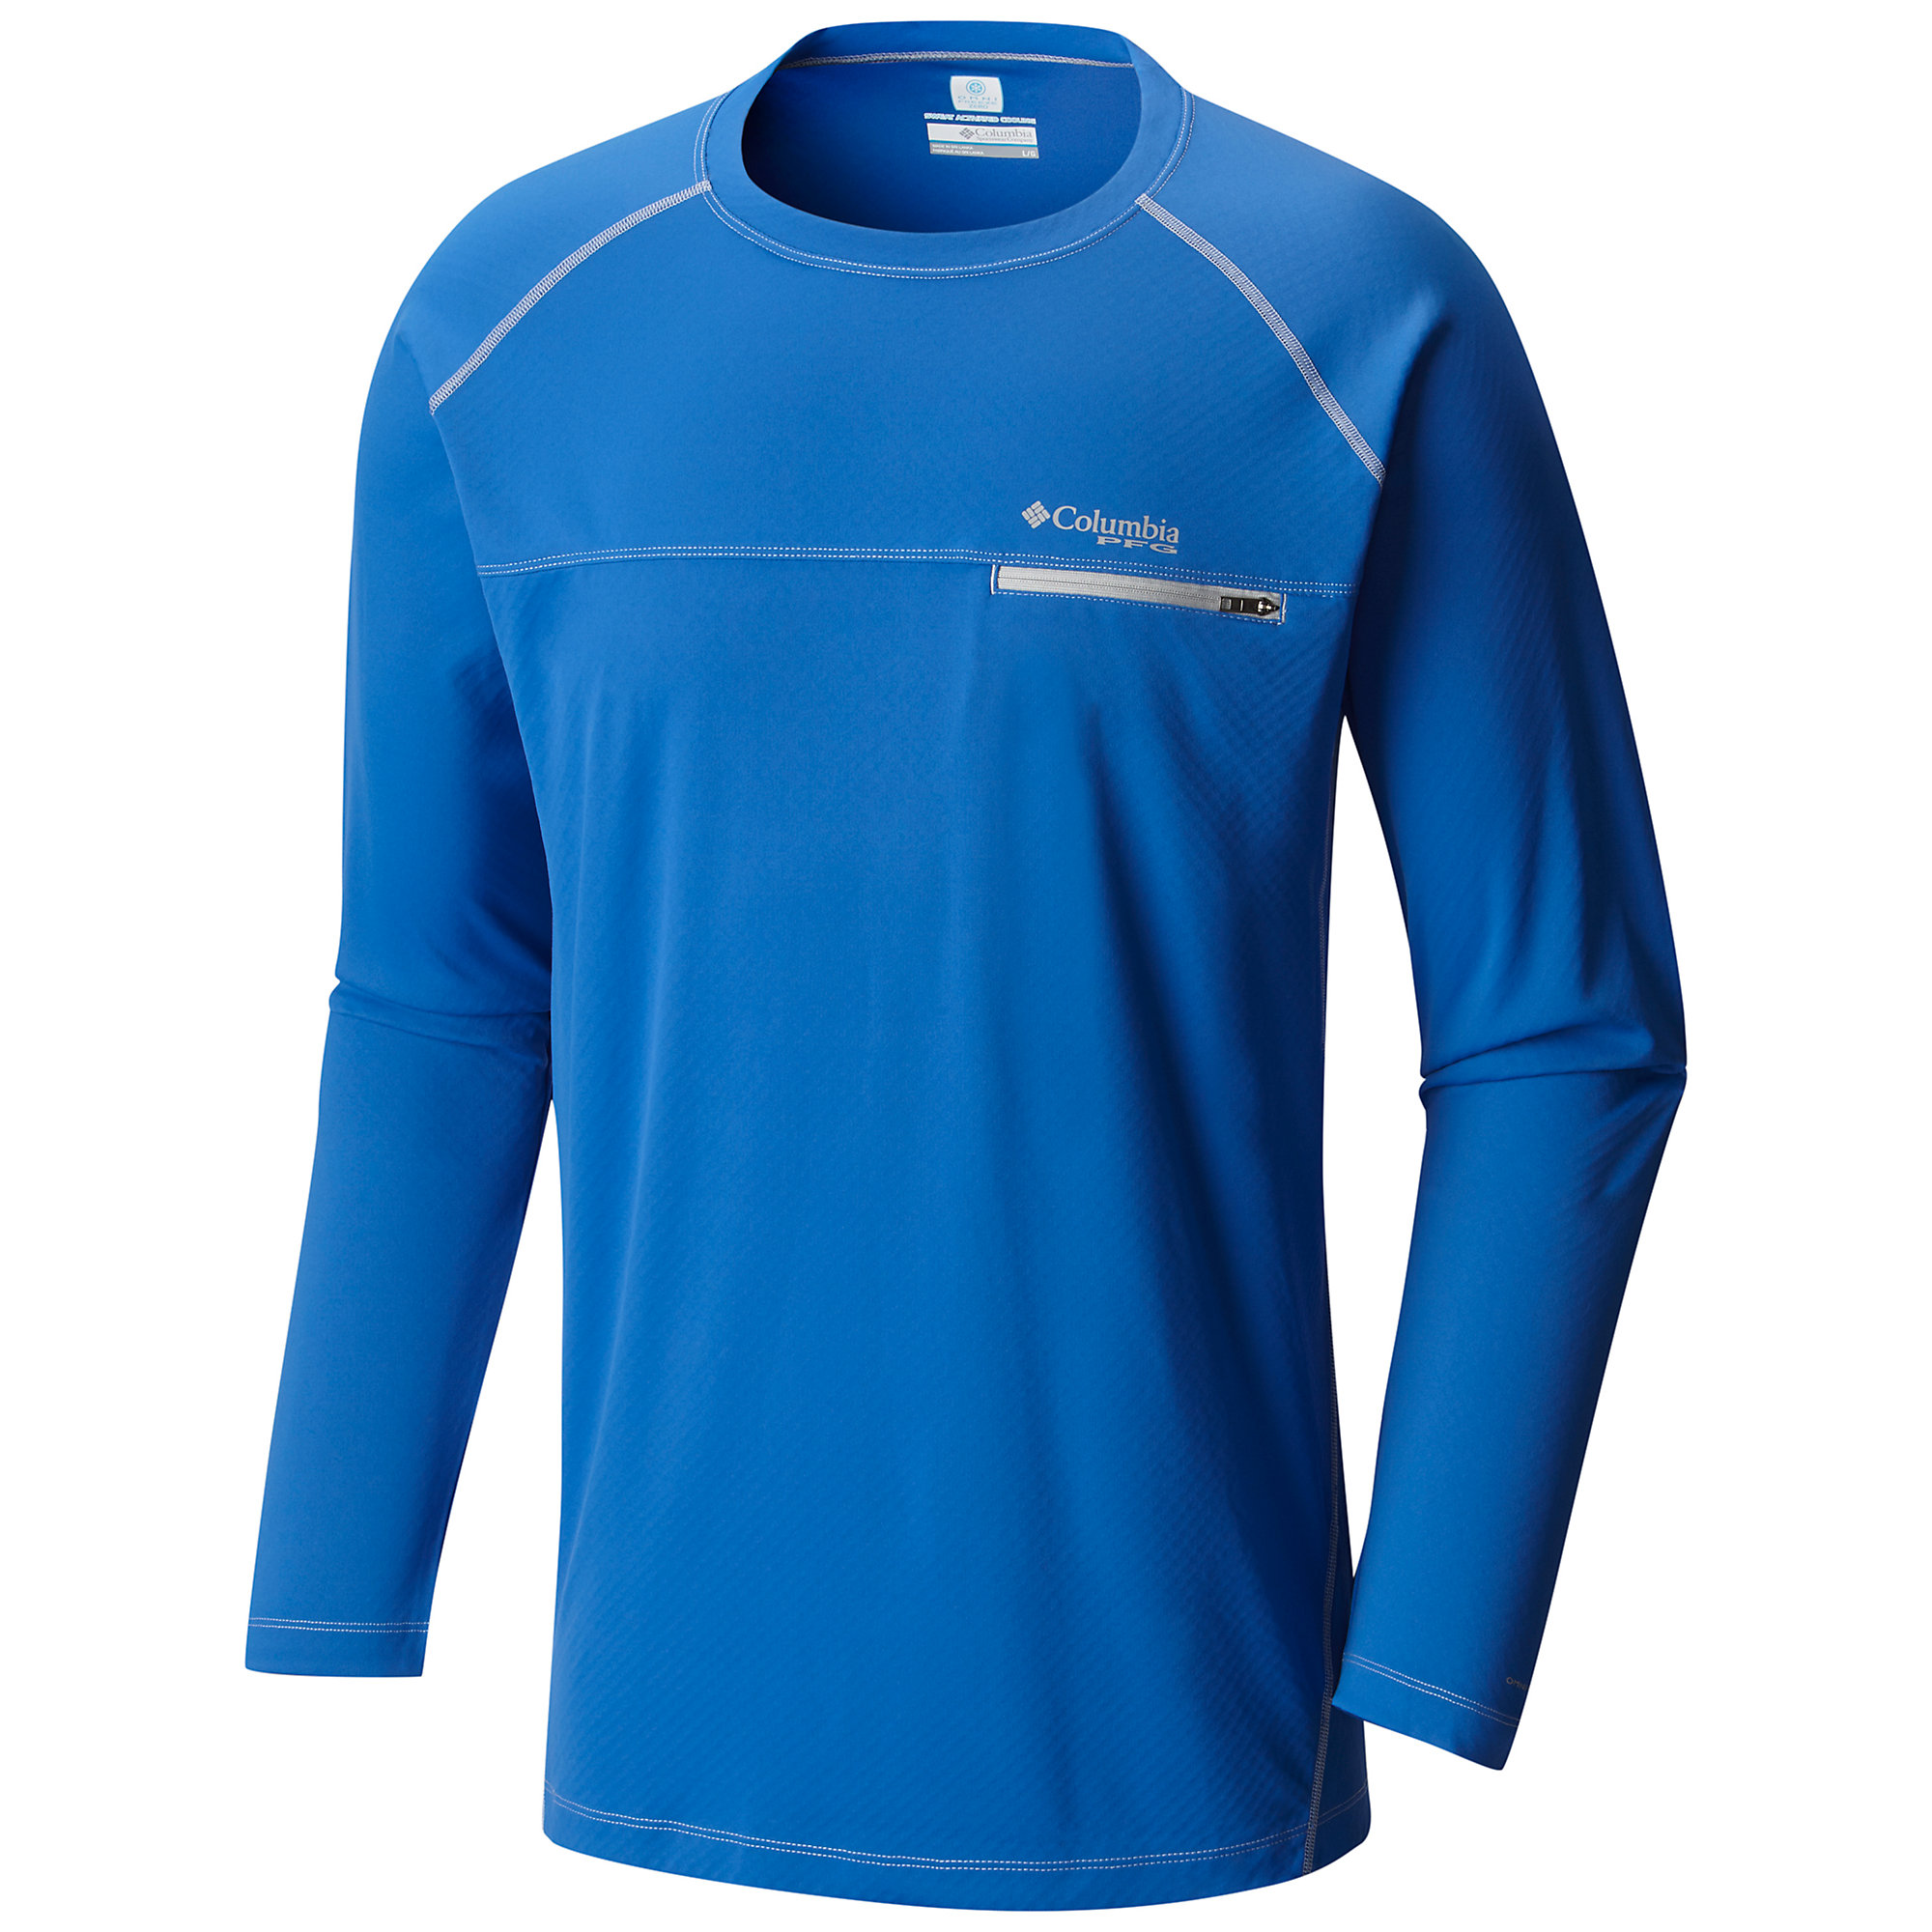 Columbia PFG Cool Catch Tech ZERO Long Sleeve Shirt